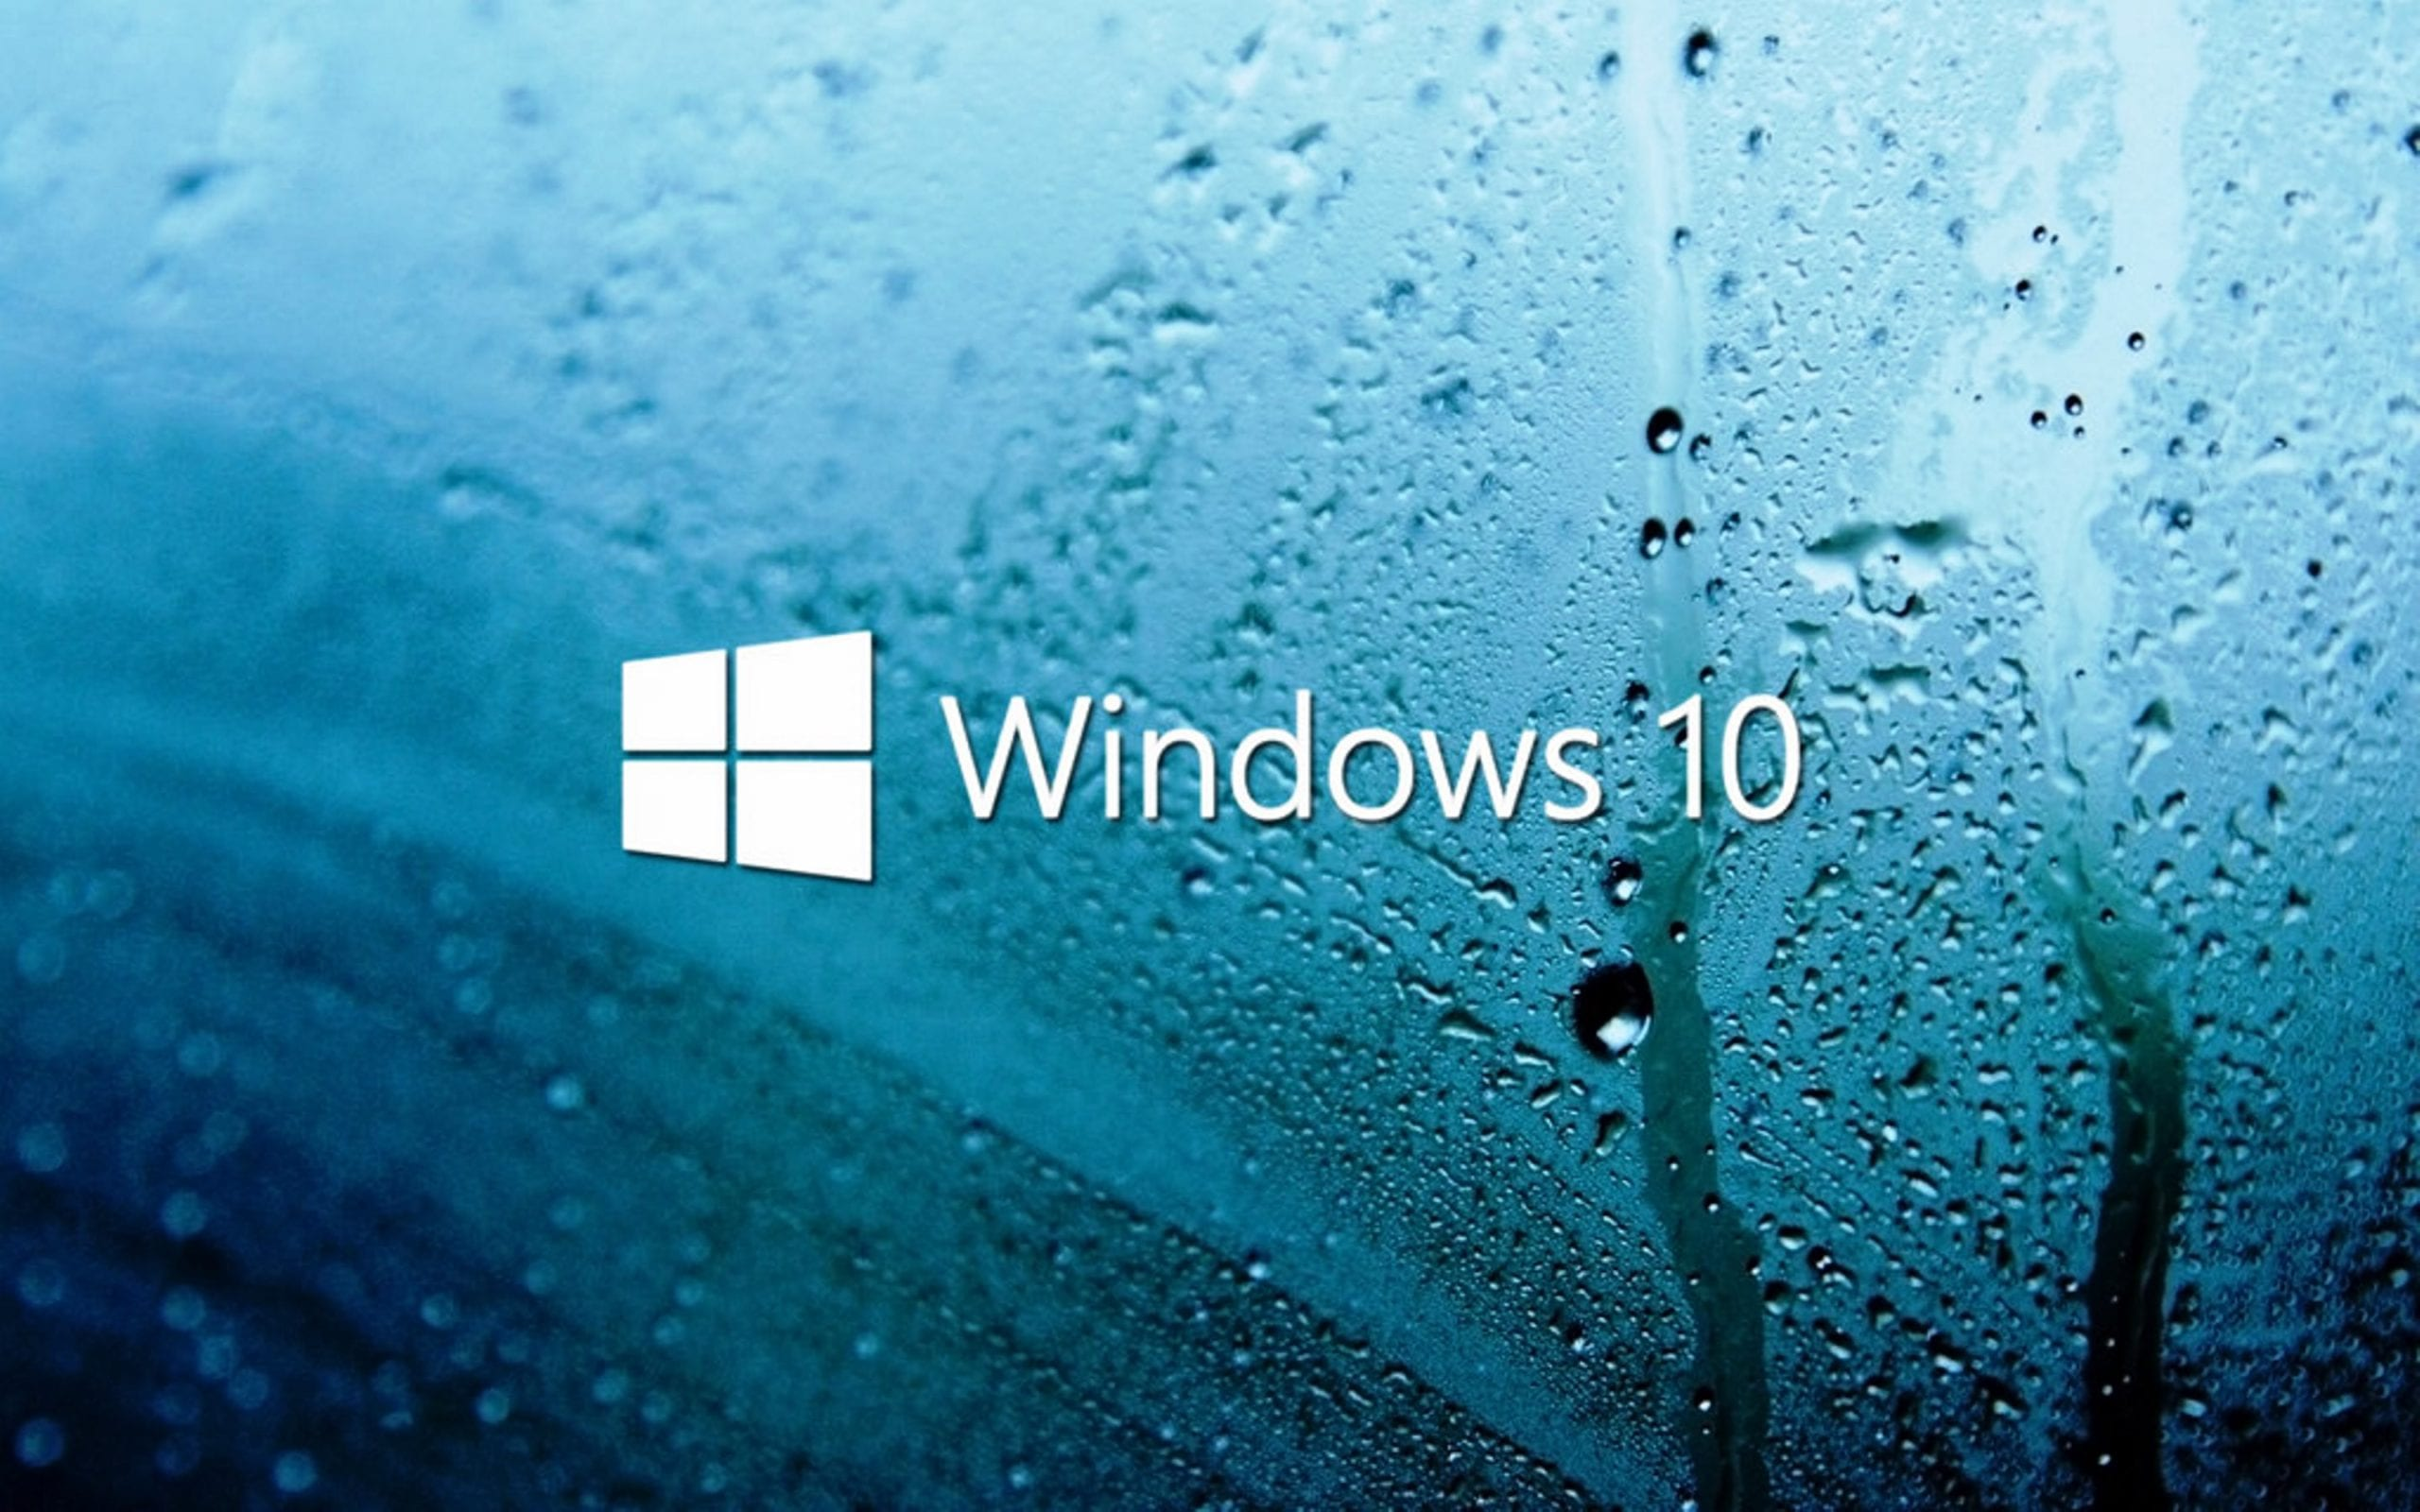 how to activate windows 7 with windows 10 key